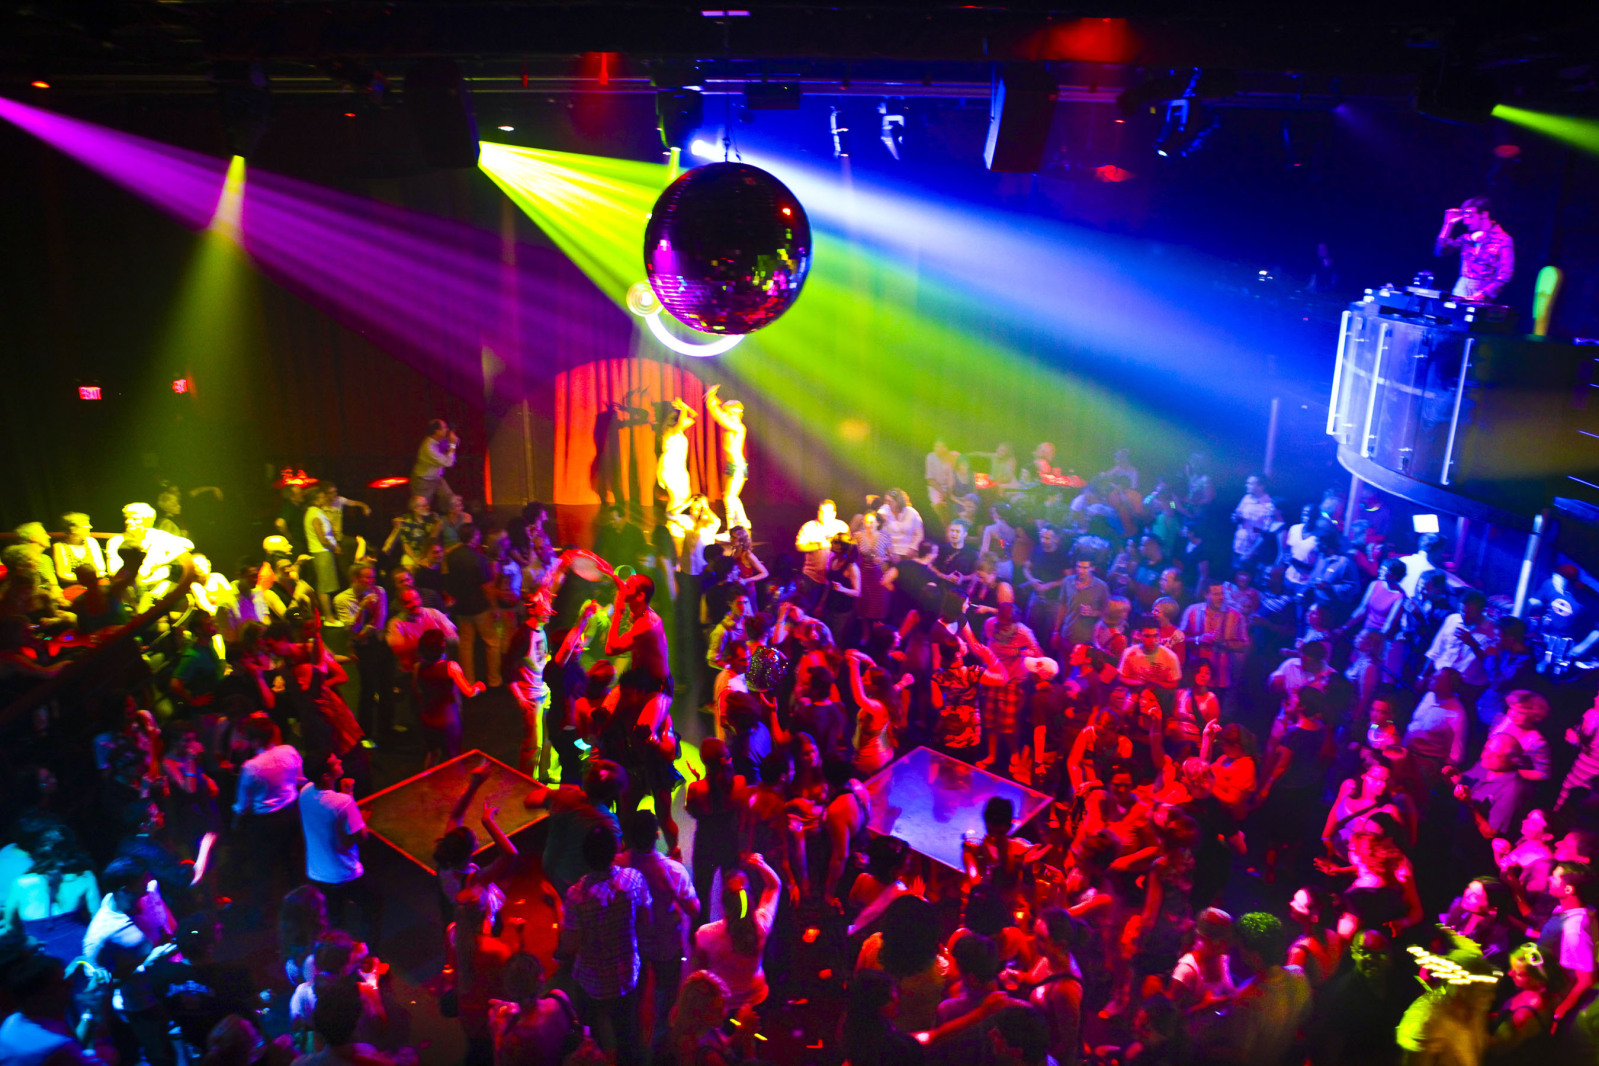 A discotheque in Pattaya